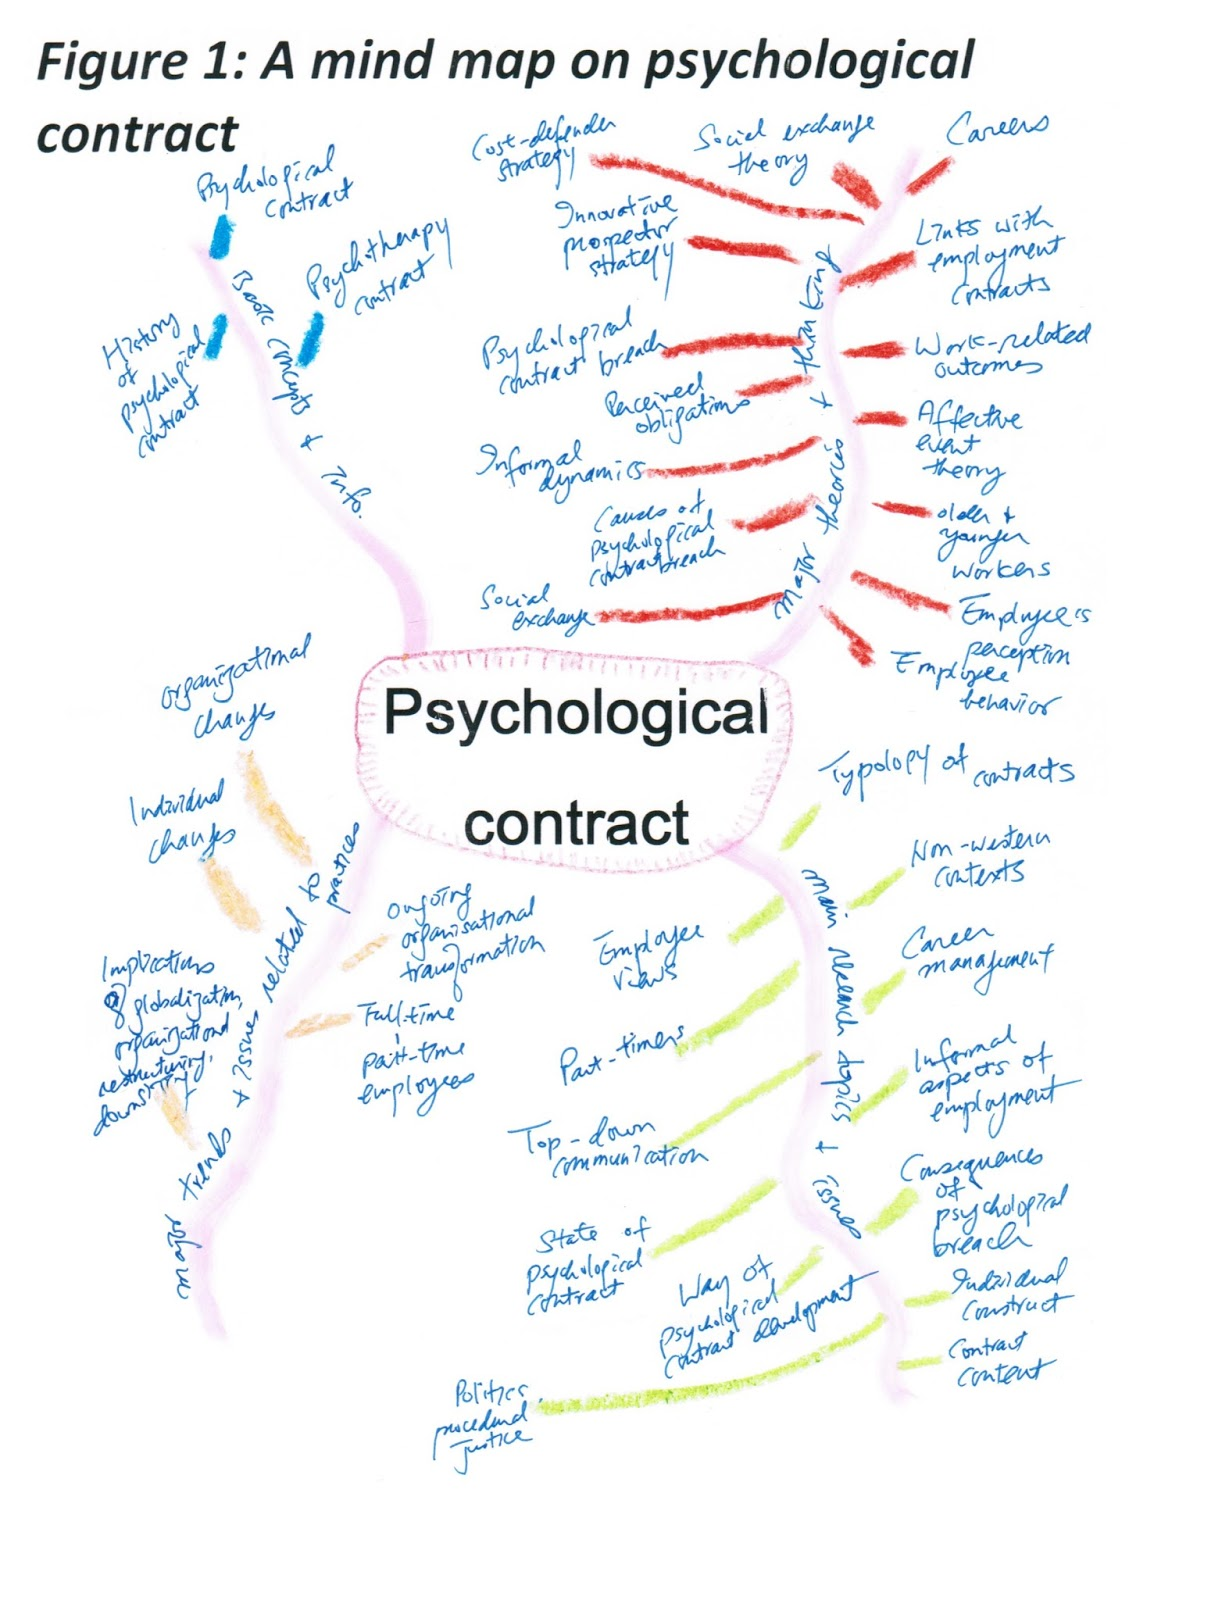 Joseph Kk Ho E Resources Mind Mapping The Topic Of Psychological